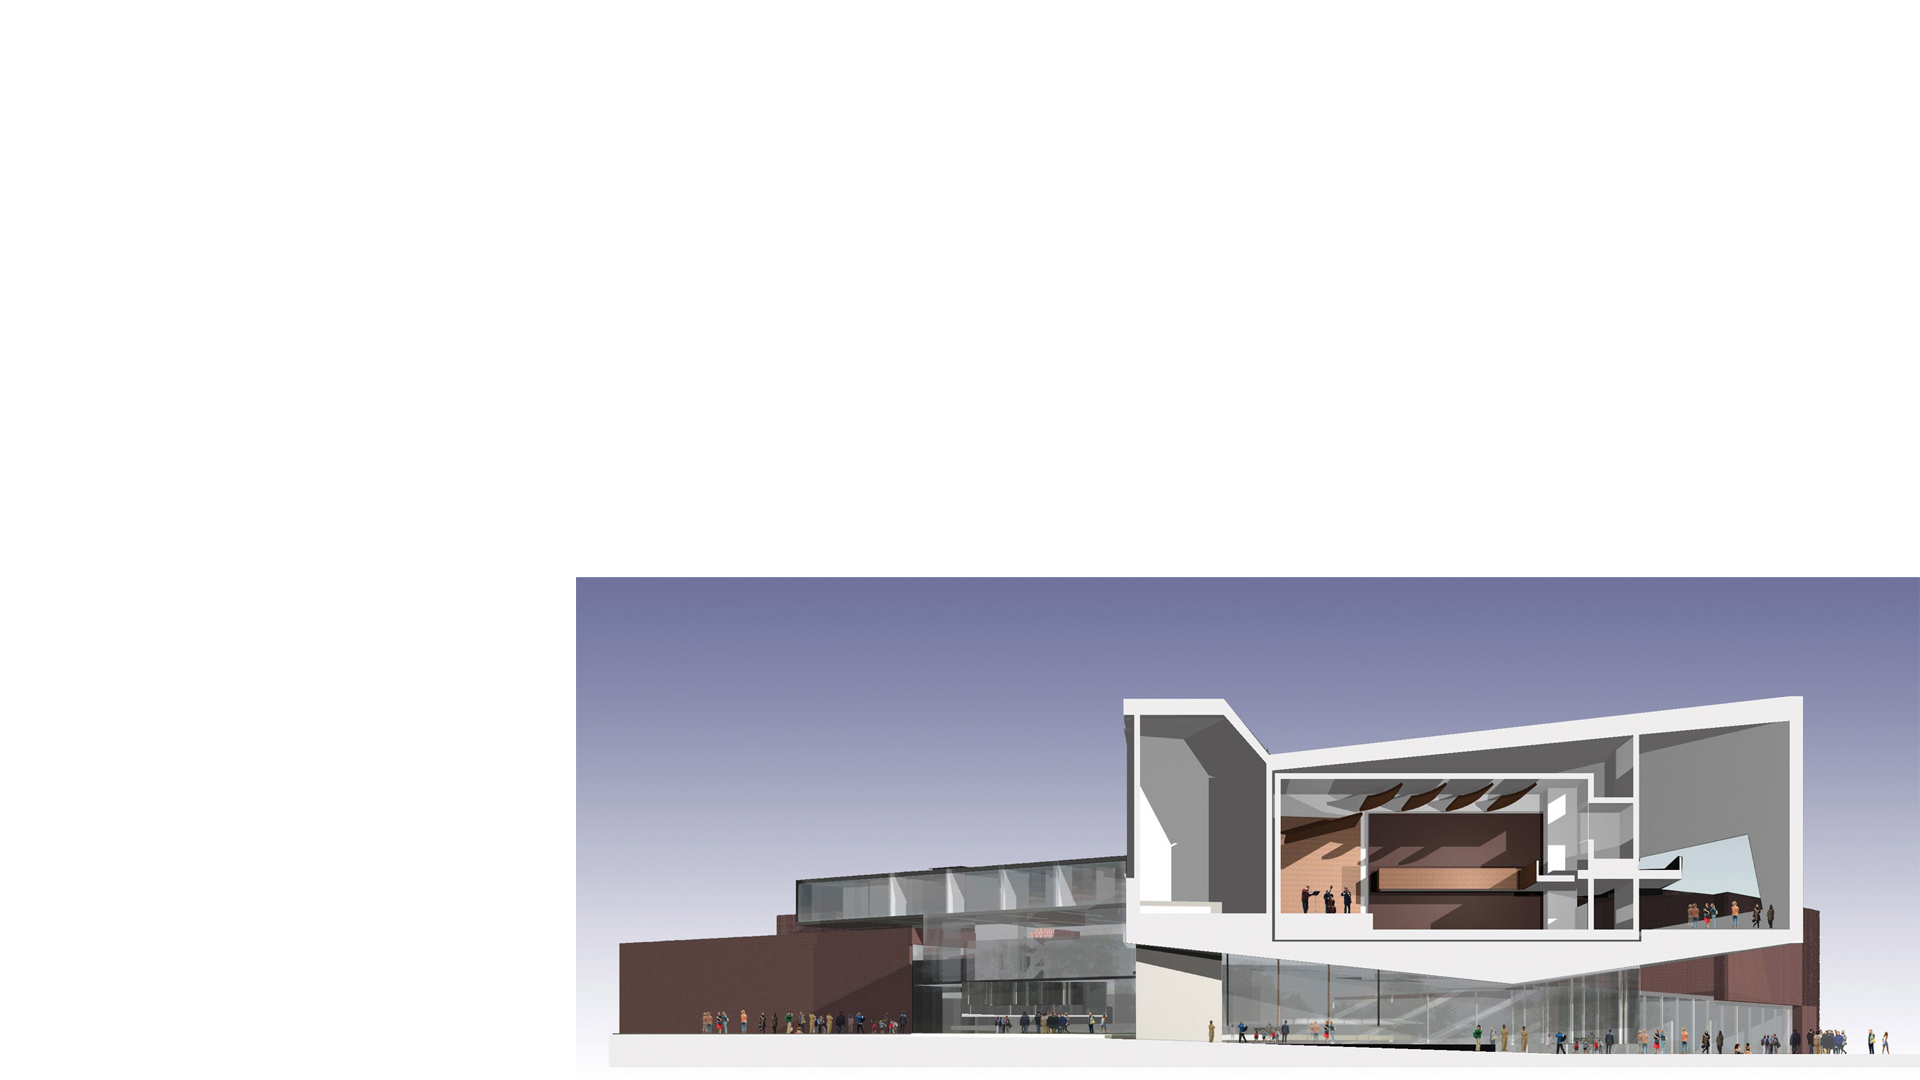 Rendered cross section of the recital hall at the proposed Kunstenshus Herning